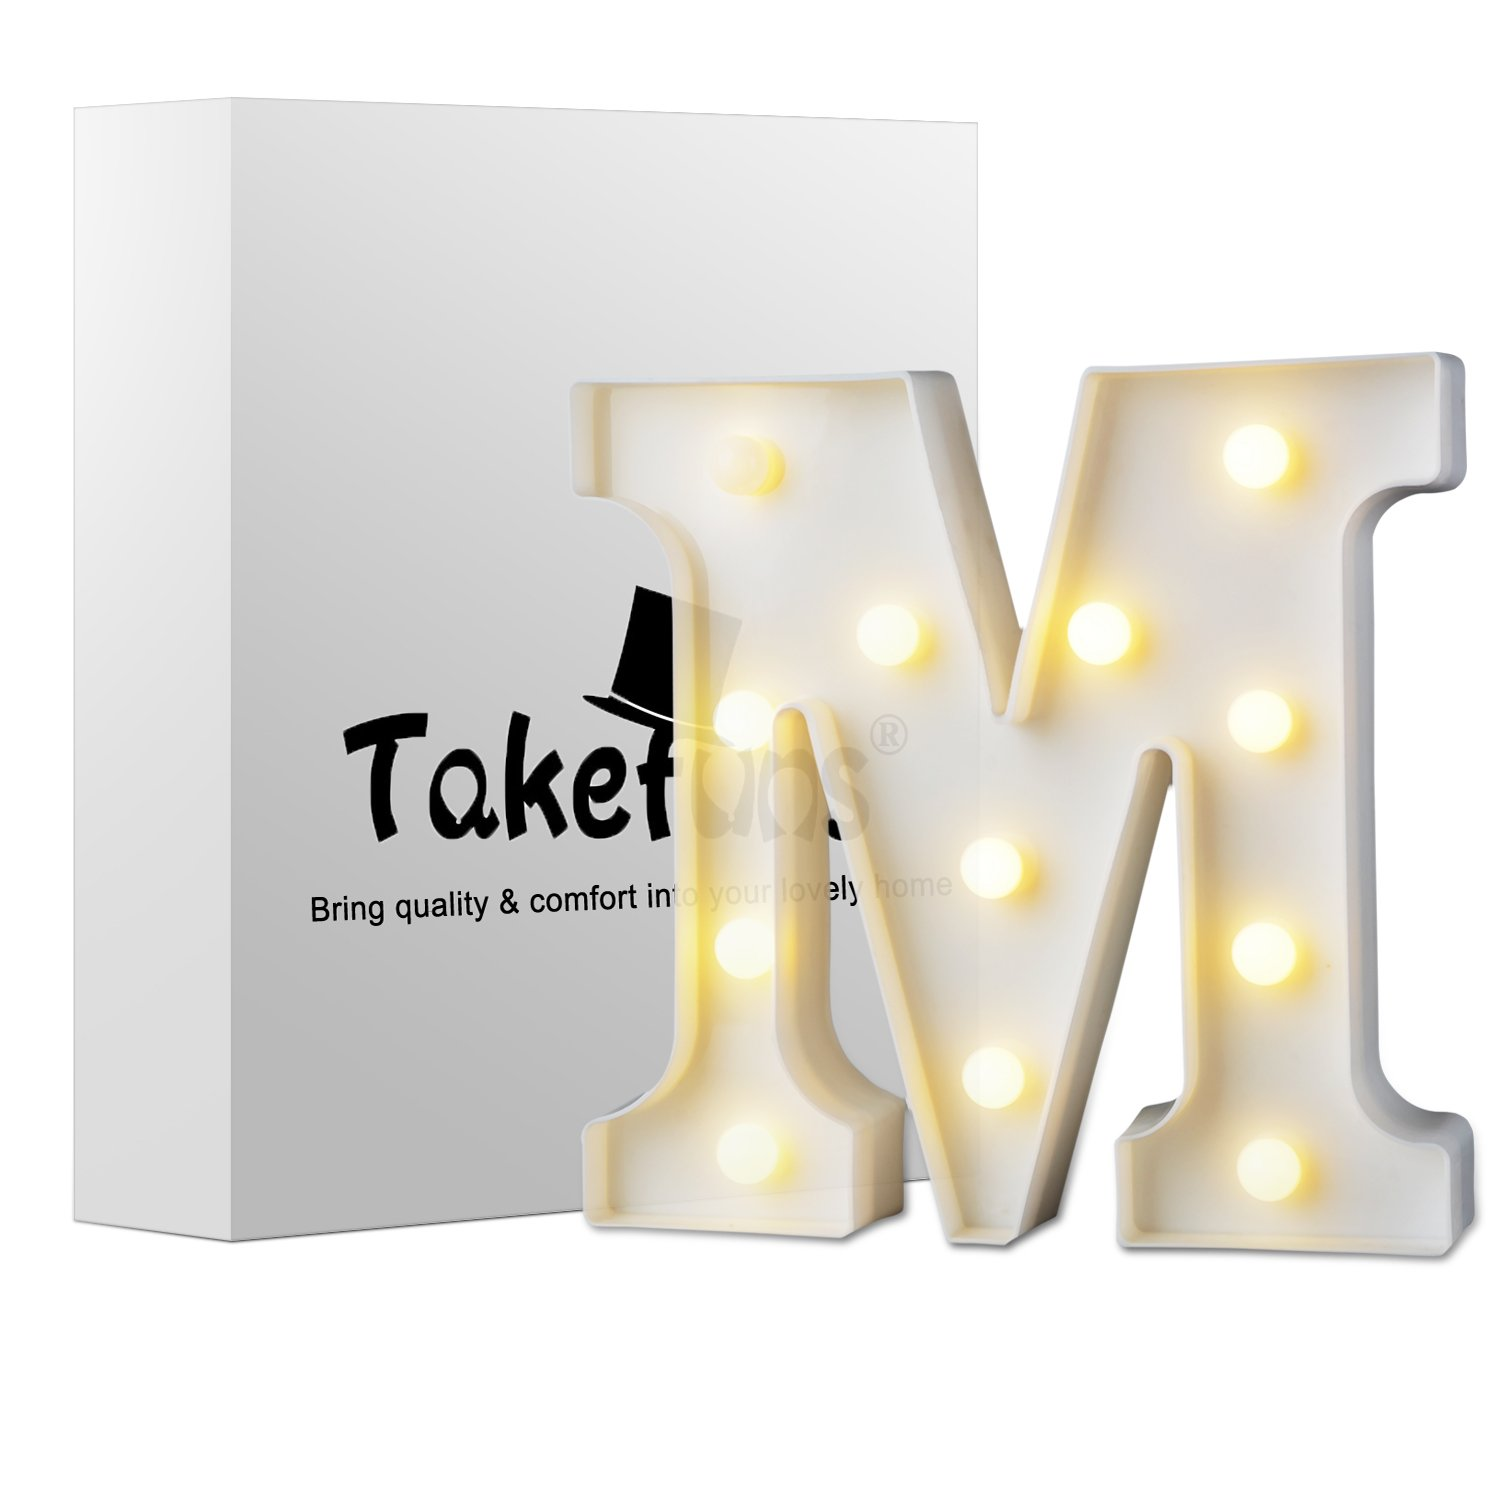 Takefuns Decorative LED Illuminated Letter Marquee Sign - Alphabet Marquee Letters with Lights for Wedding Birthday Party Christmas Night Light Lamp Home Bar Decoration R,Warm White